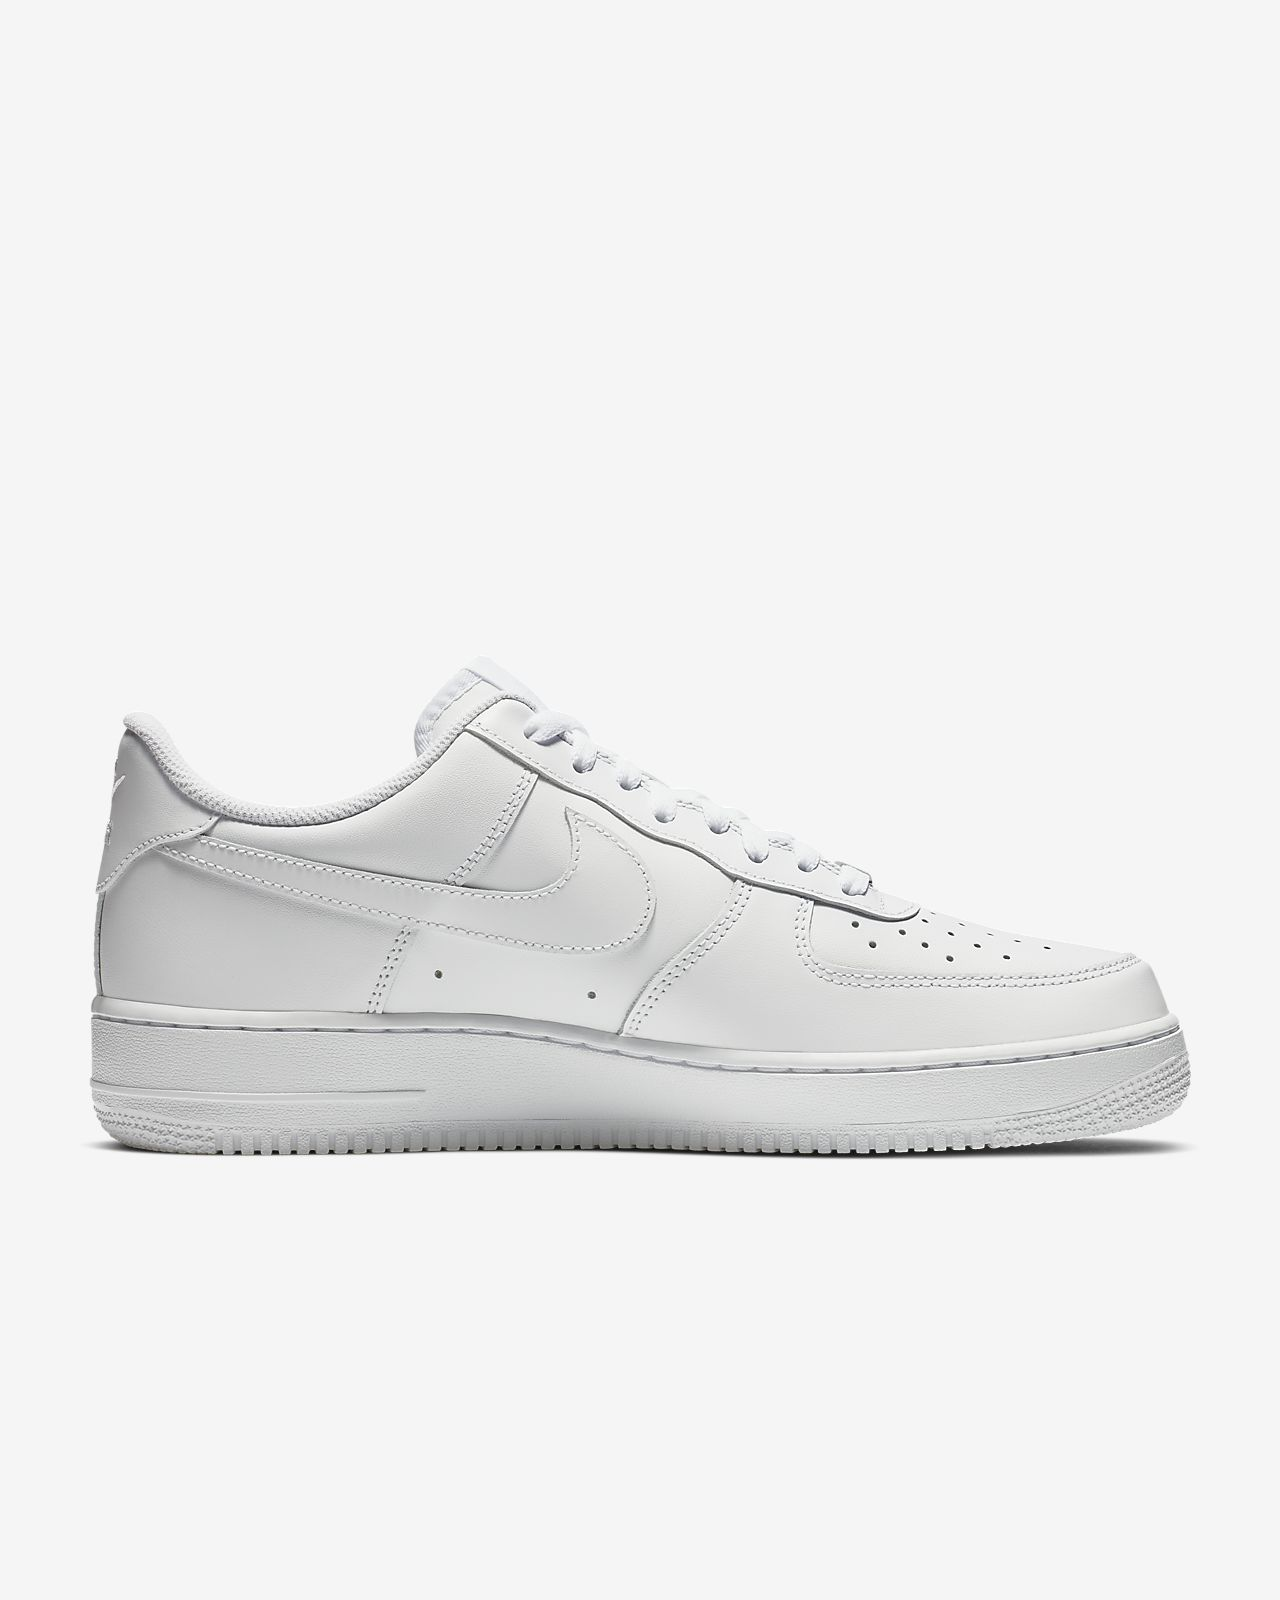 vart kan man köpa nike air force